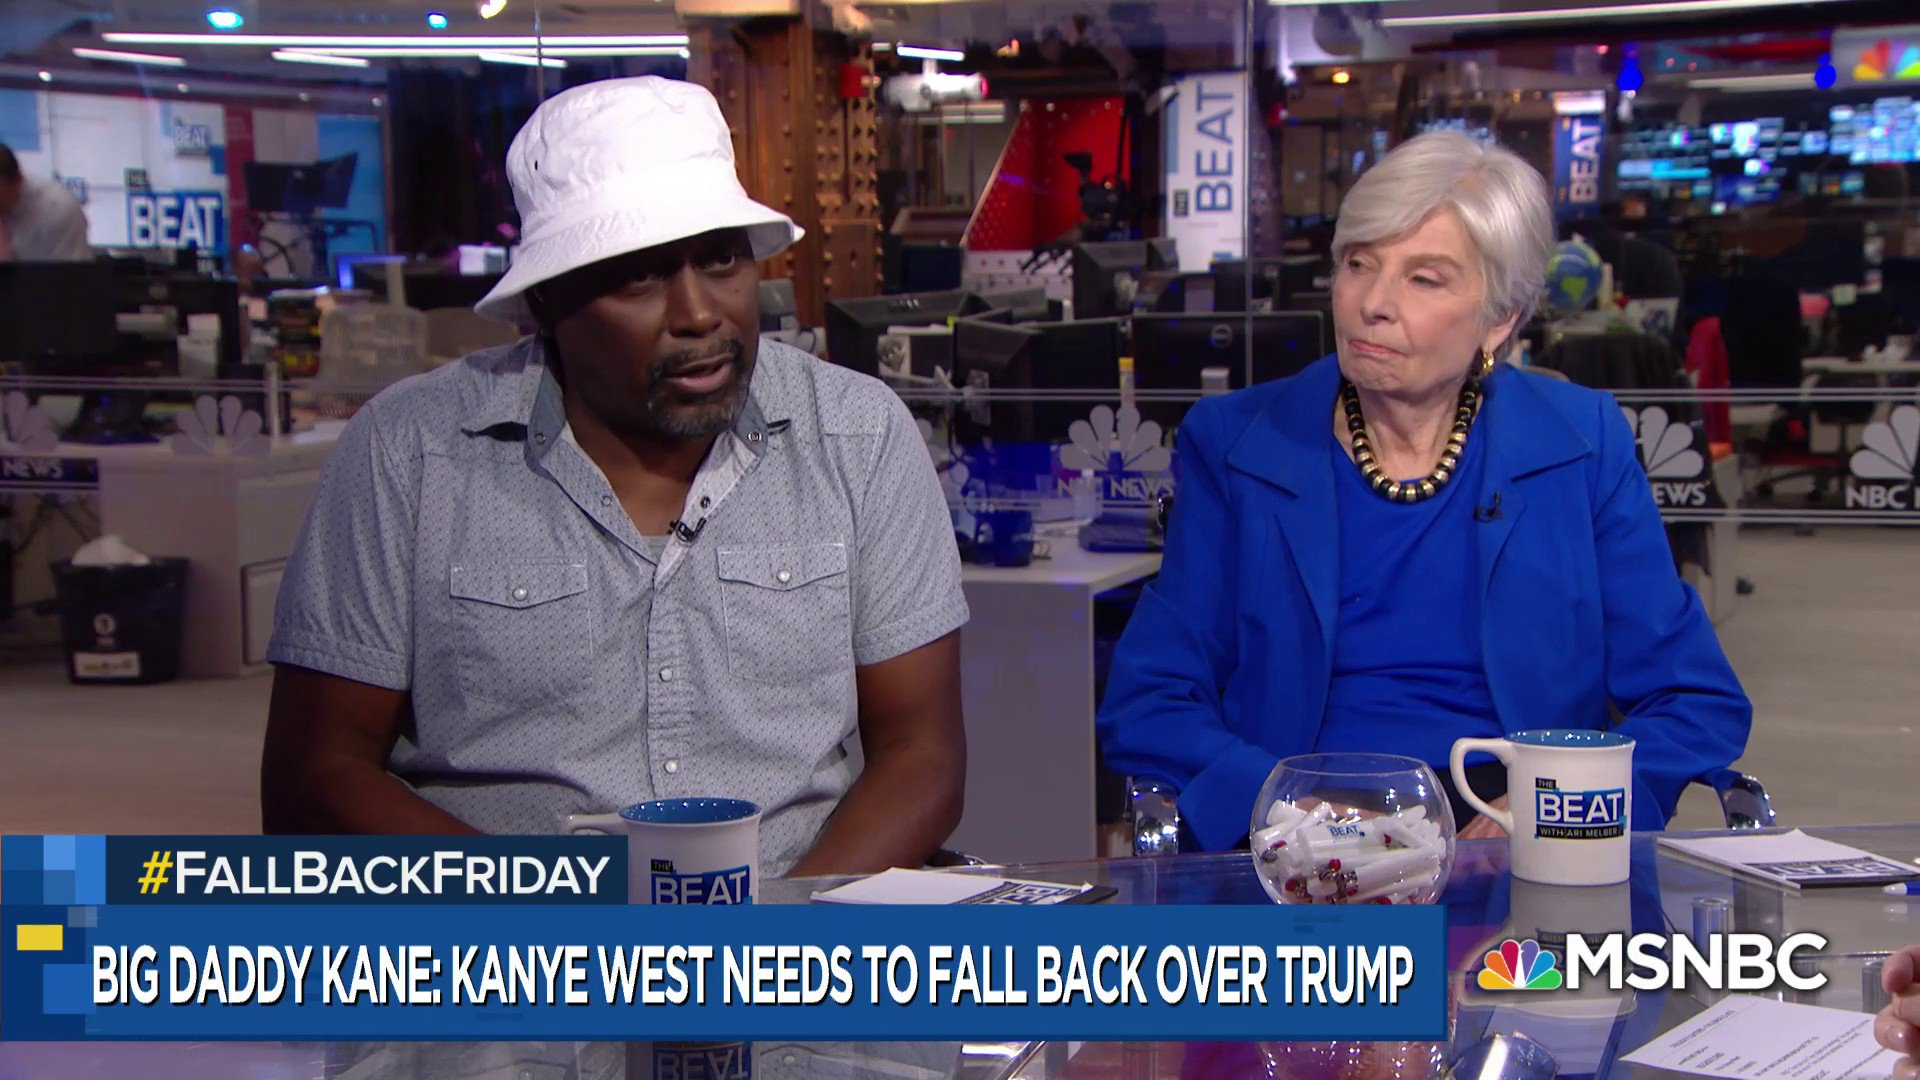 .@BigDaddyKane: Kanye West needs to fall back over Trump https://t.co/VC23tFQNRg https://t.co/cRuPW8FLou